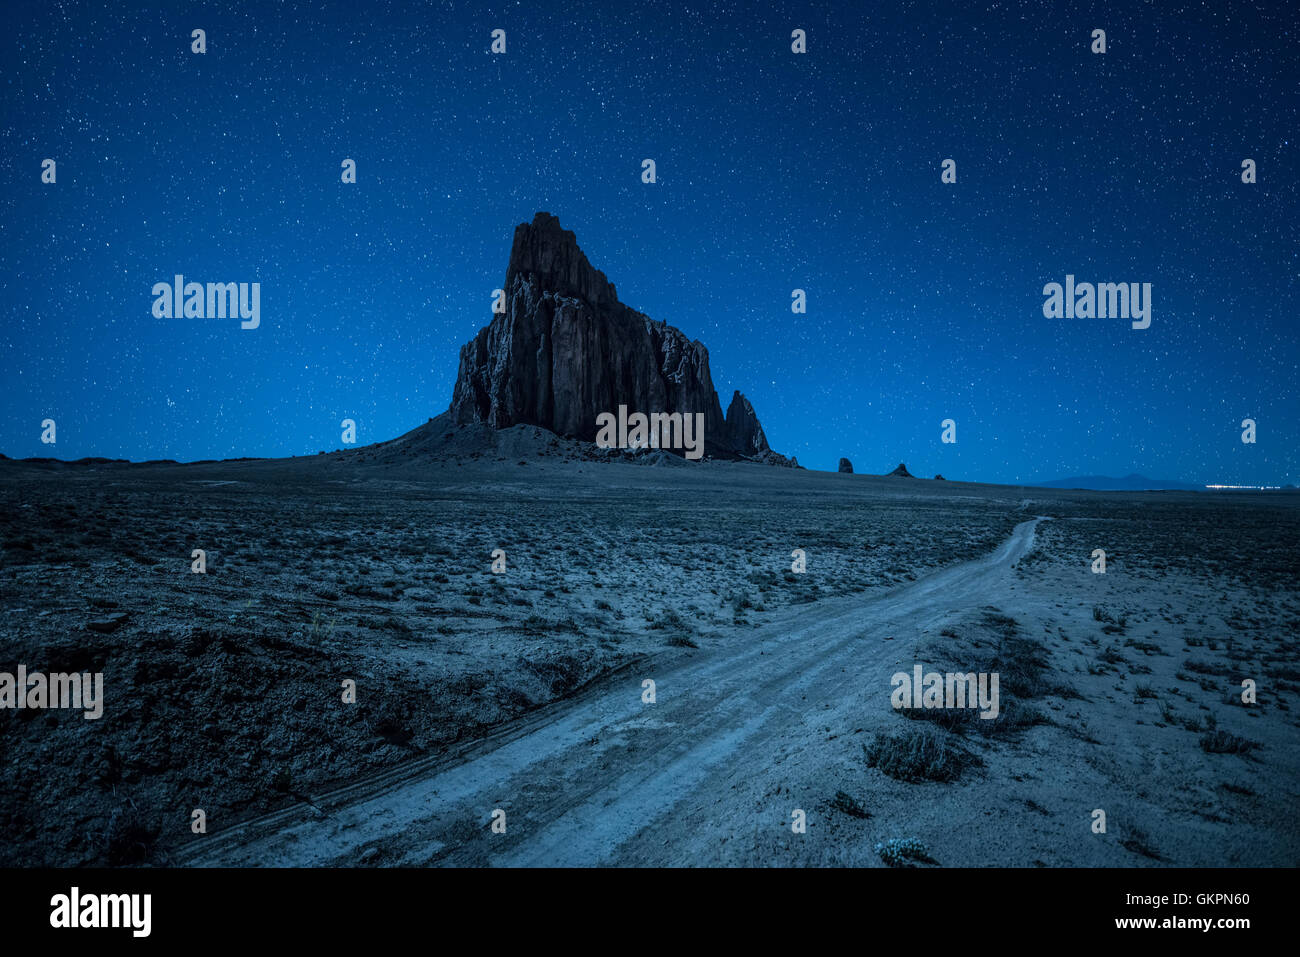 Night sky with many stars above Shiprock and a dirt road - Stock Image